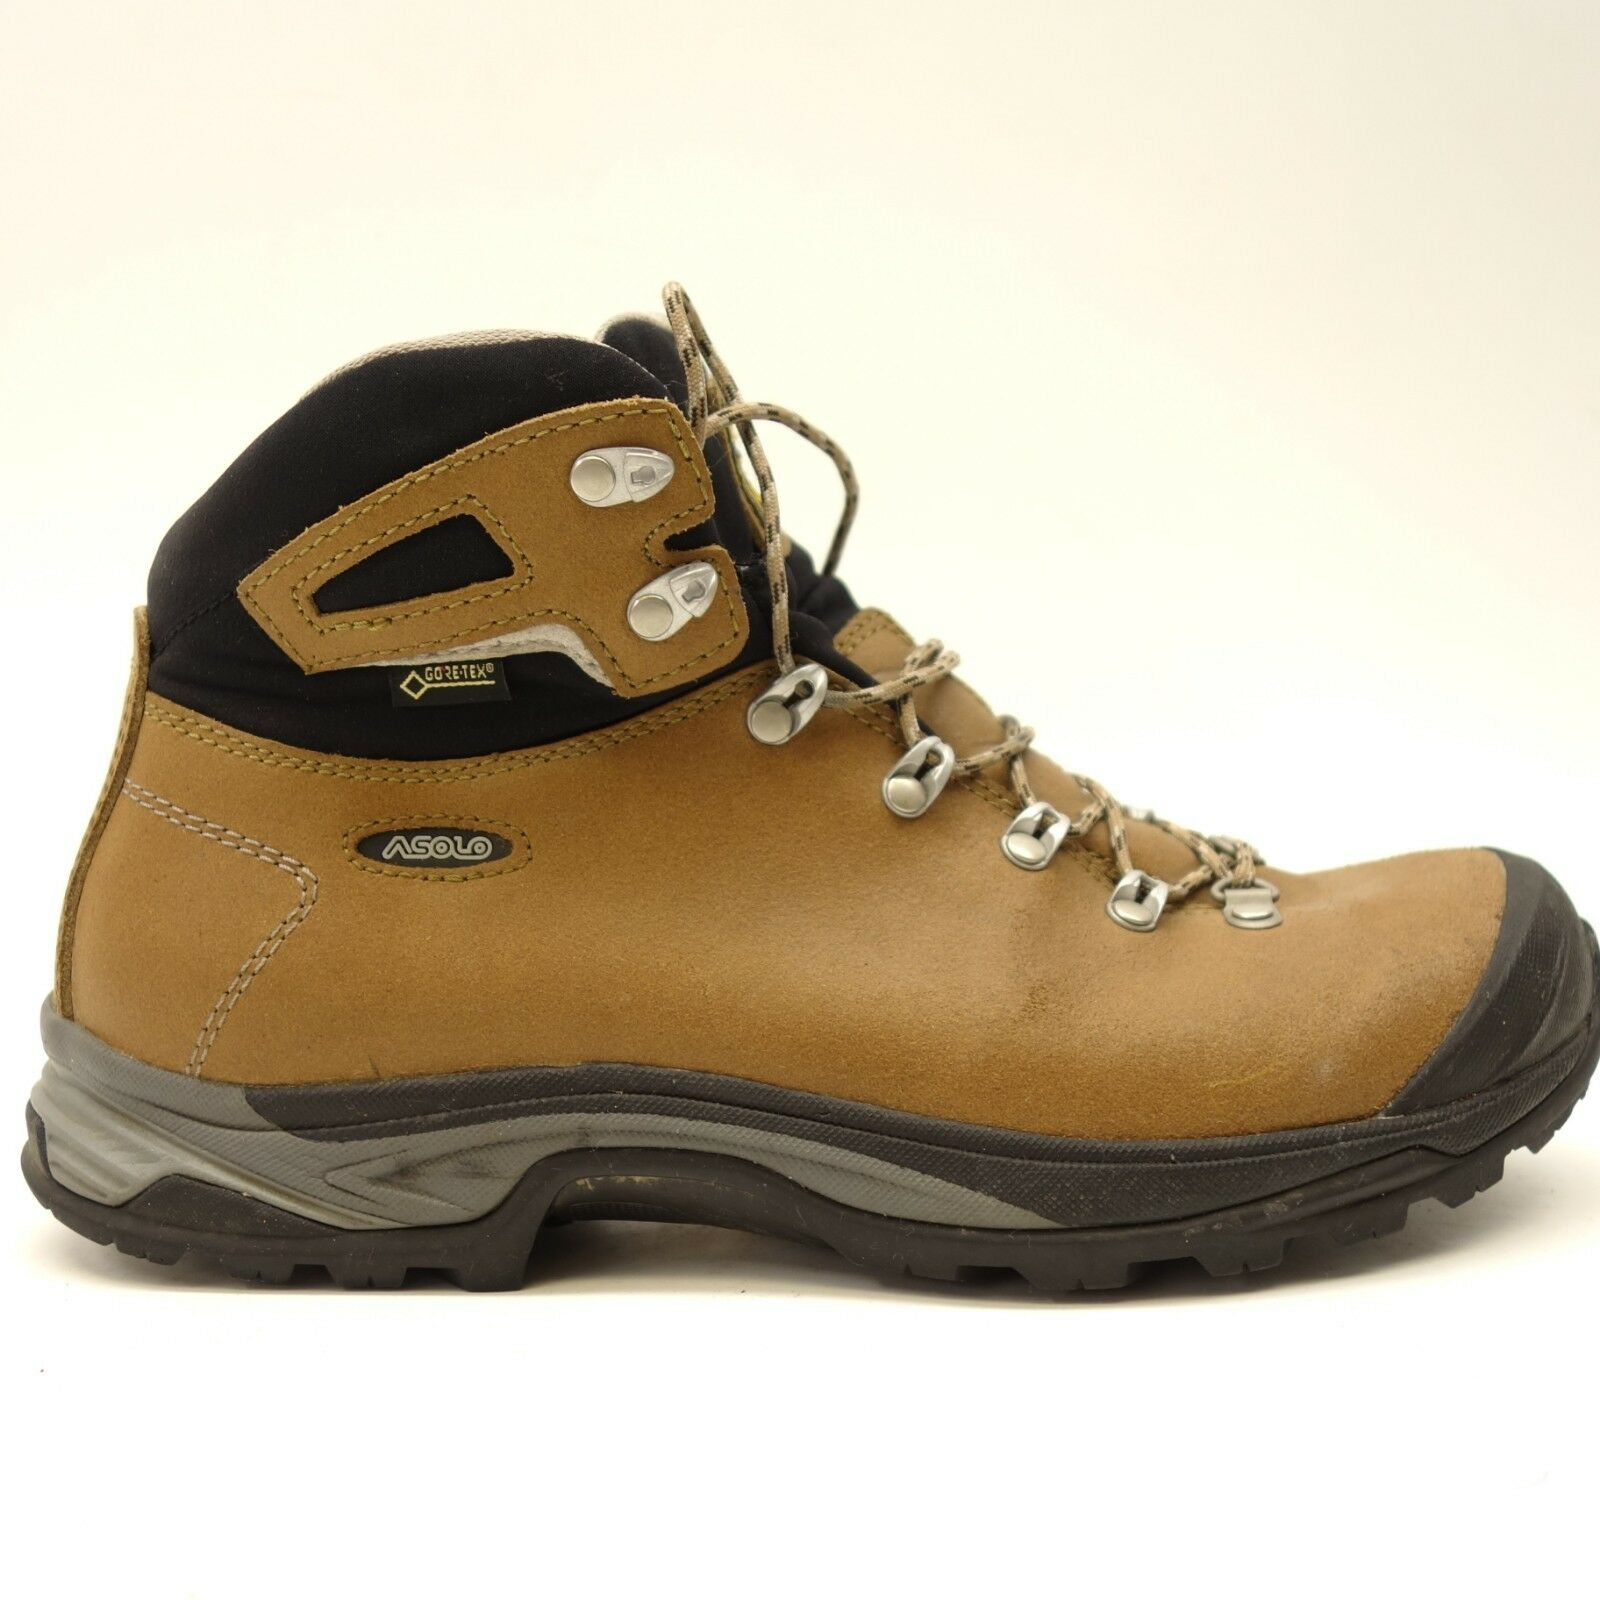 Asolo damen Thyrus GV GTX Waterproof Athletic Hiking Mid Stiefel US 8.5 EU 40.66